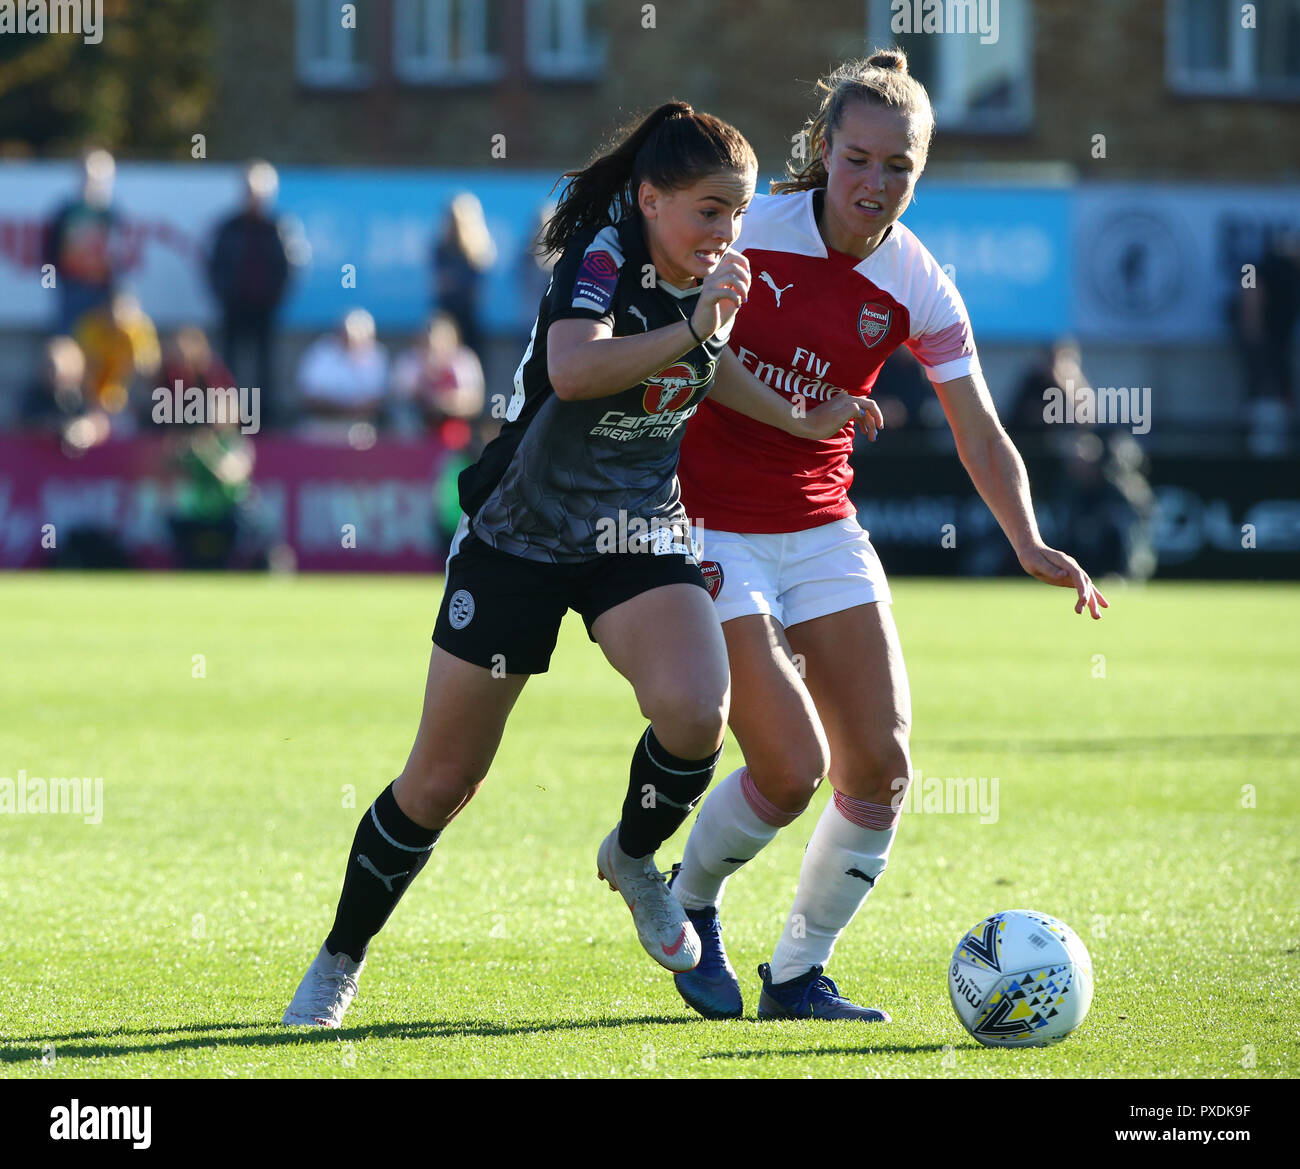 Lily Woodman of Reading FC Women during Women's Super League One match between Arsenal and Reading FC Women at Boredom Wood, Boreham Wood, England on  - Stock Image